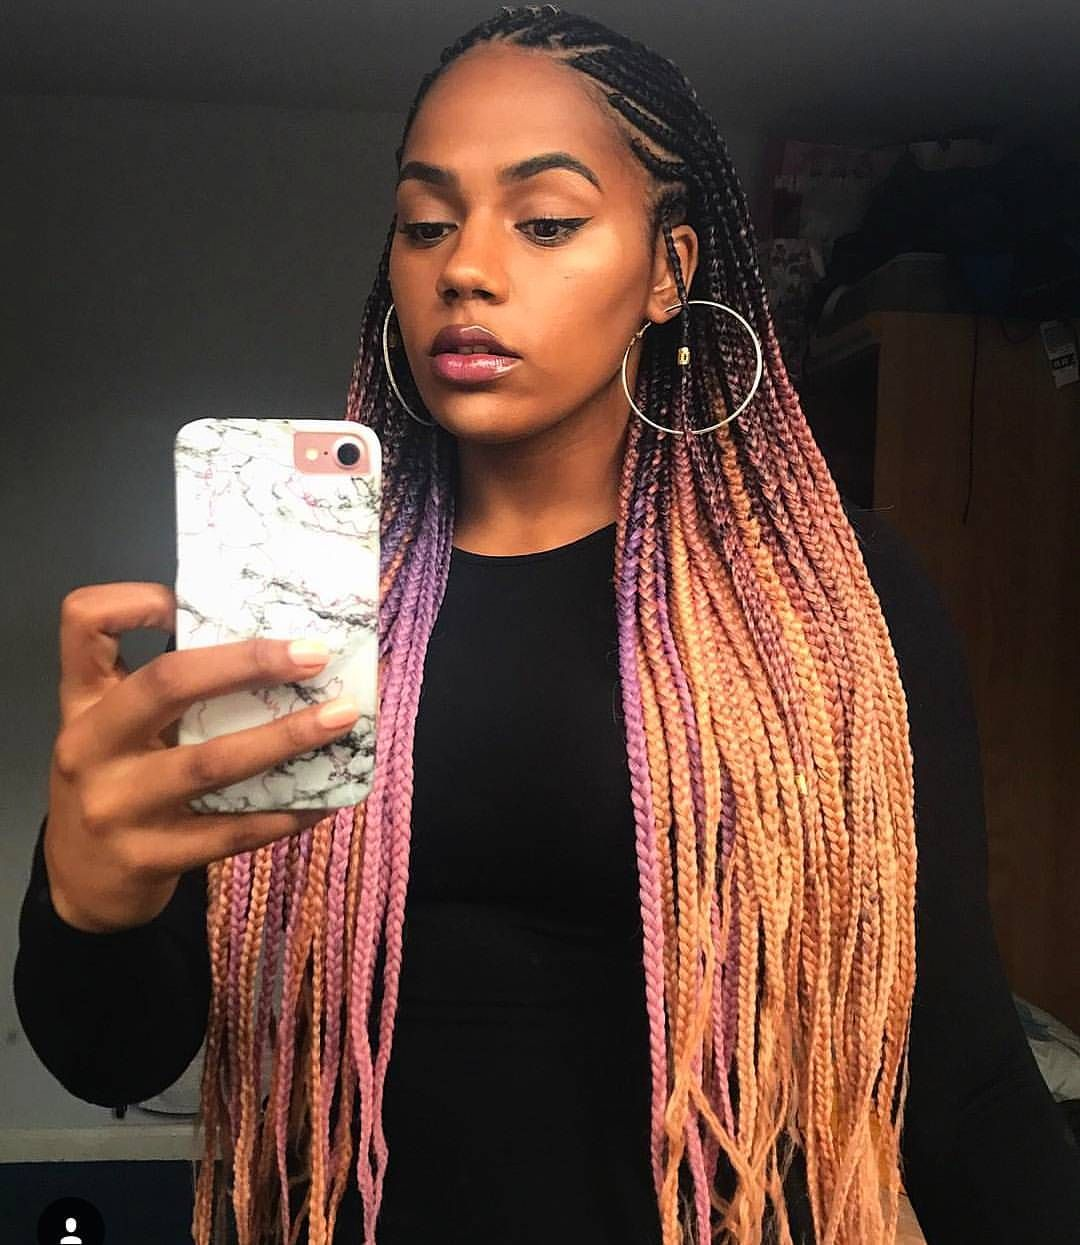 Don't Know What To Do With Your Hair: Check Out This Trendy Ghana Braided Hairstyle #protectivestyles